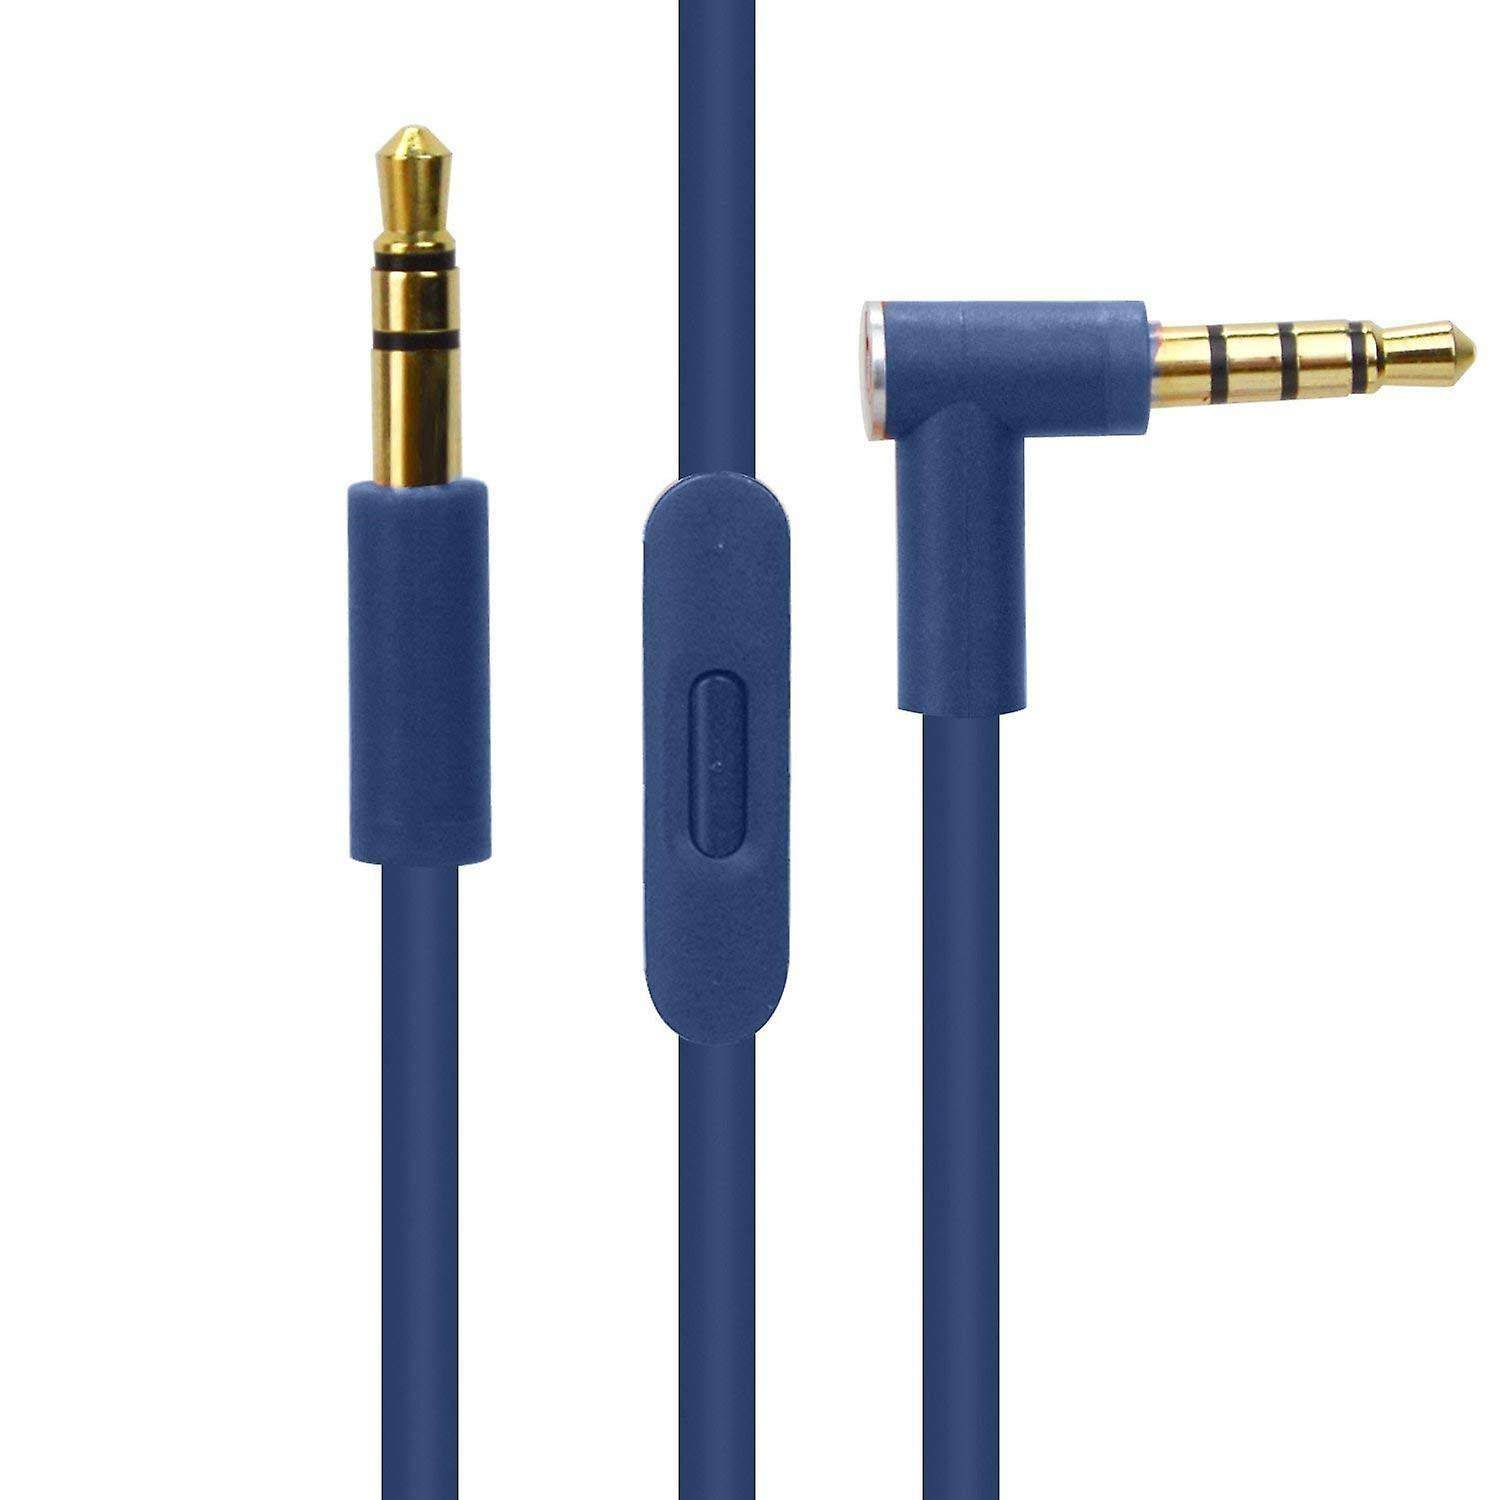 Reytid Blue Audio Cable For Beats By Dr Dre Solo2 Wireless How To Wire A Volume Switch Headphones With Inline Remote Control And Microphone Accessory Iphone Android Lead Fruugo